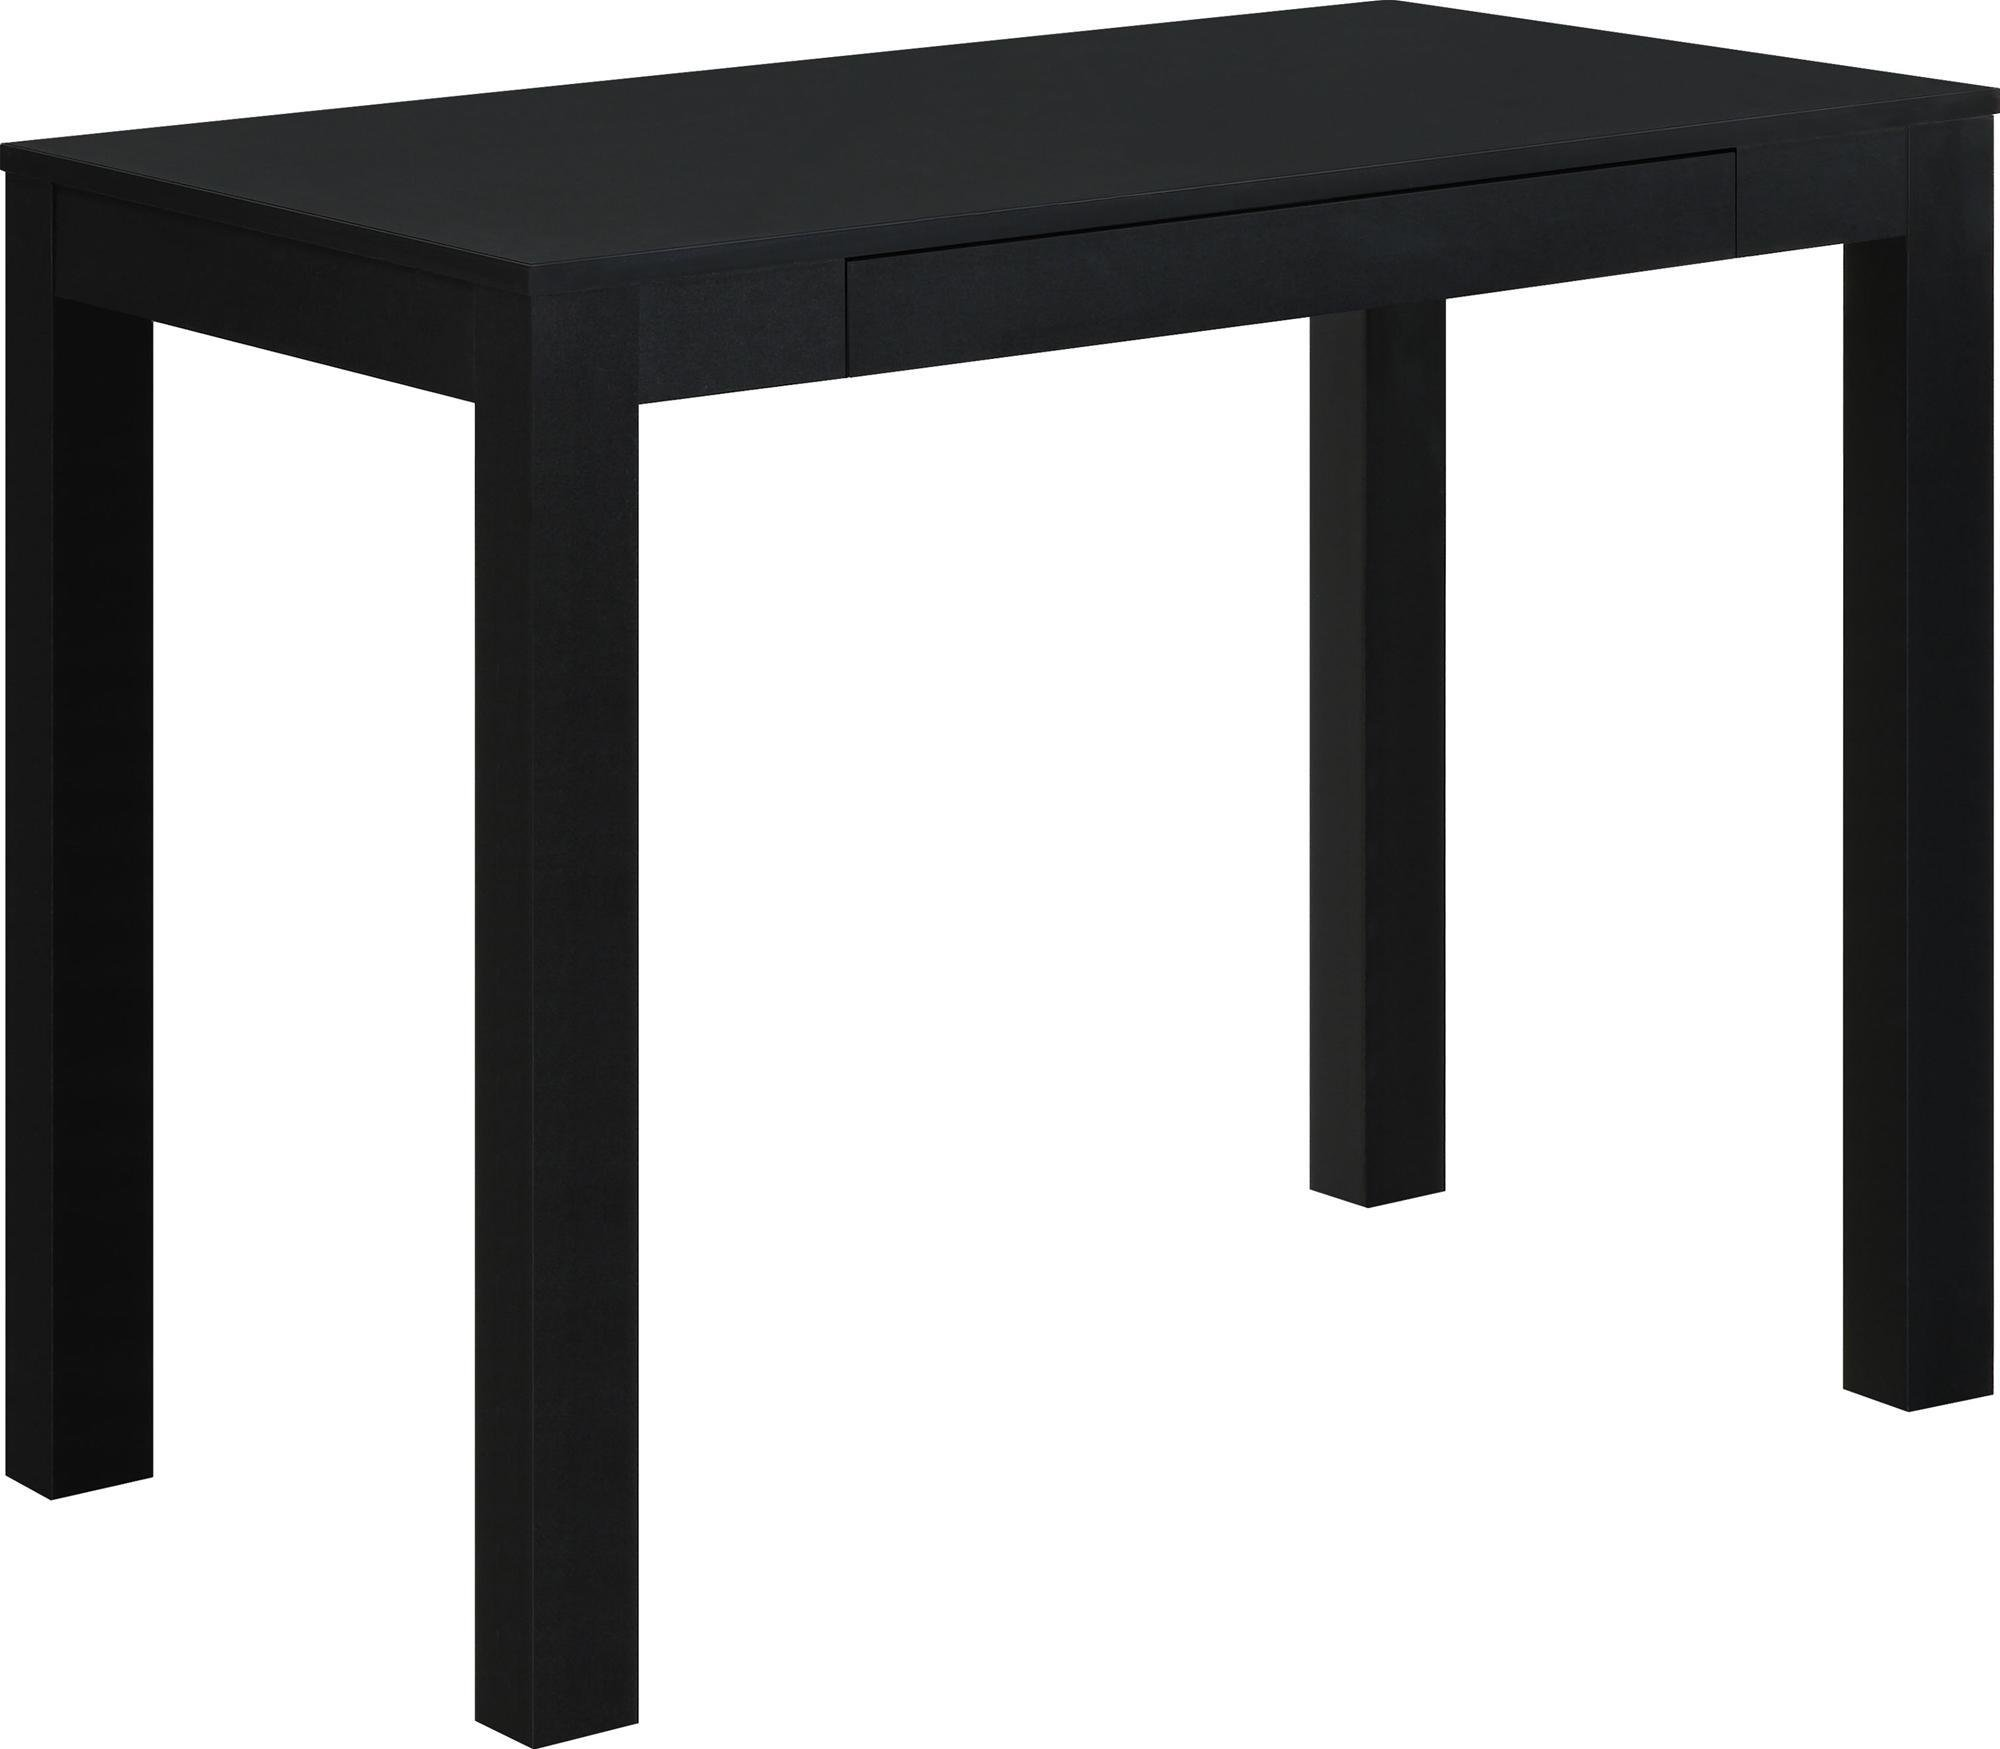 Ameriwood Home Parsons Desk with Drawer, Black by Ameriwood Home